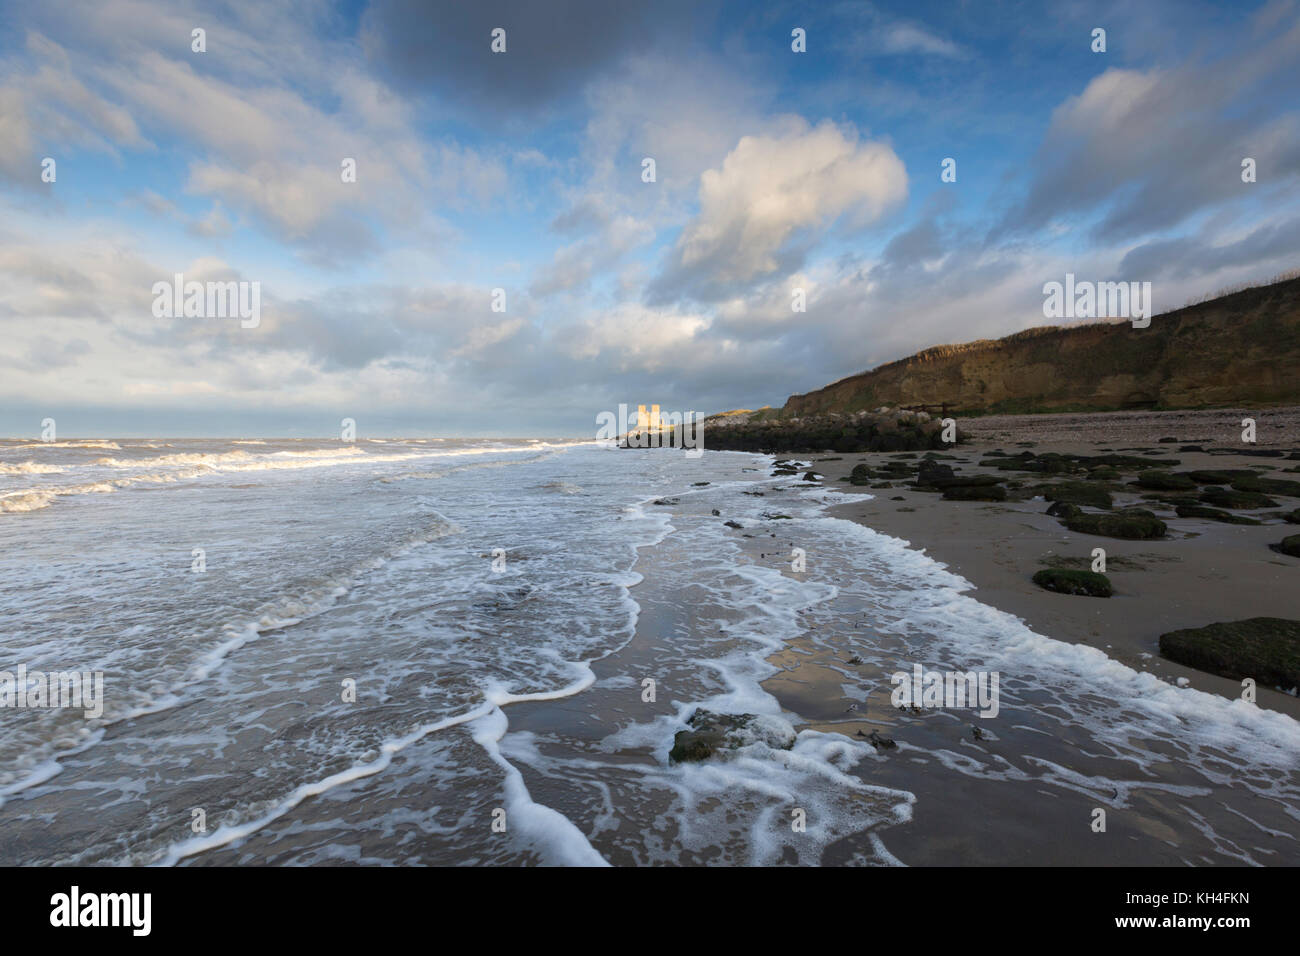 Big clouds and soft waves at Reculver beach on the north Kent coast, UK. - Stock Image